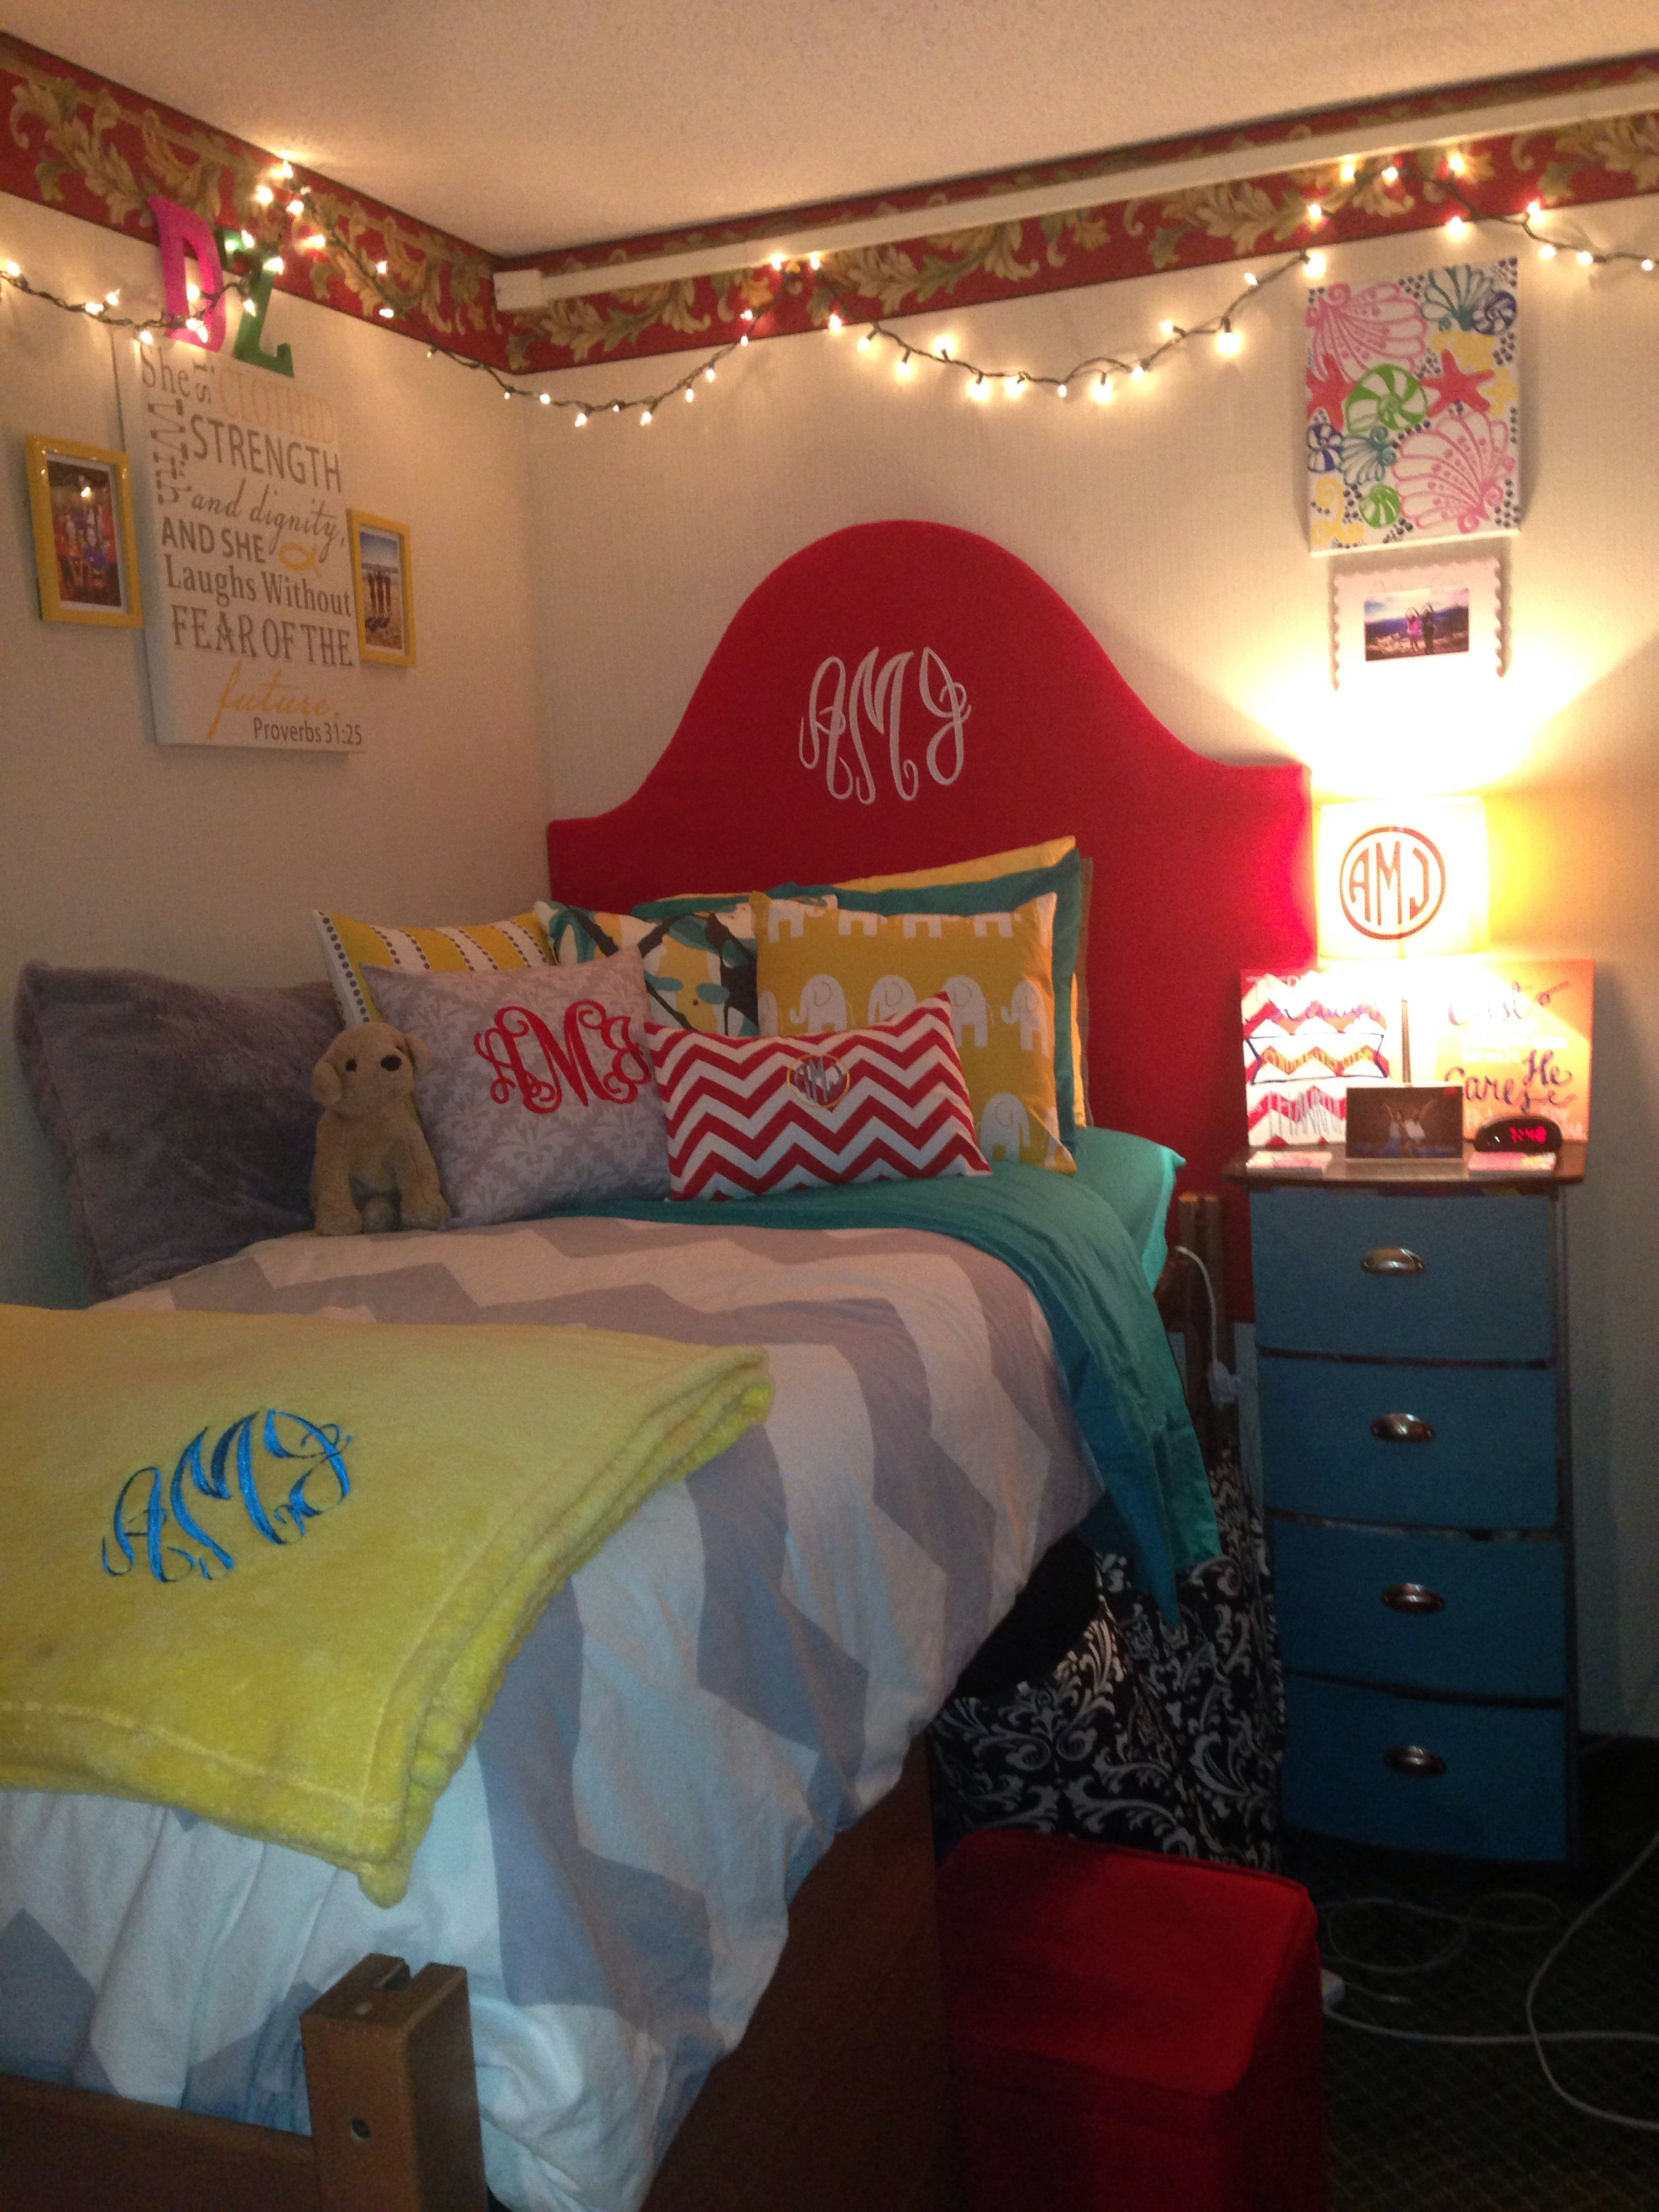 Dorm room I love the idea of making a headboard for your dorm bed